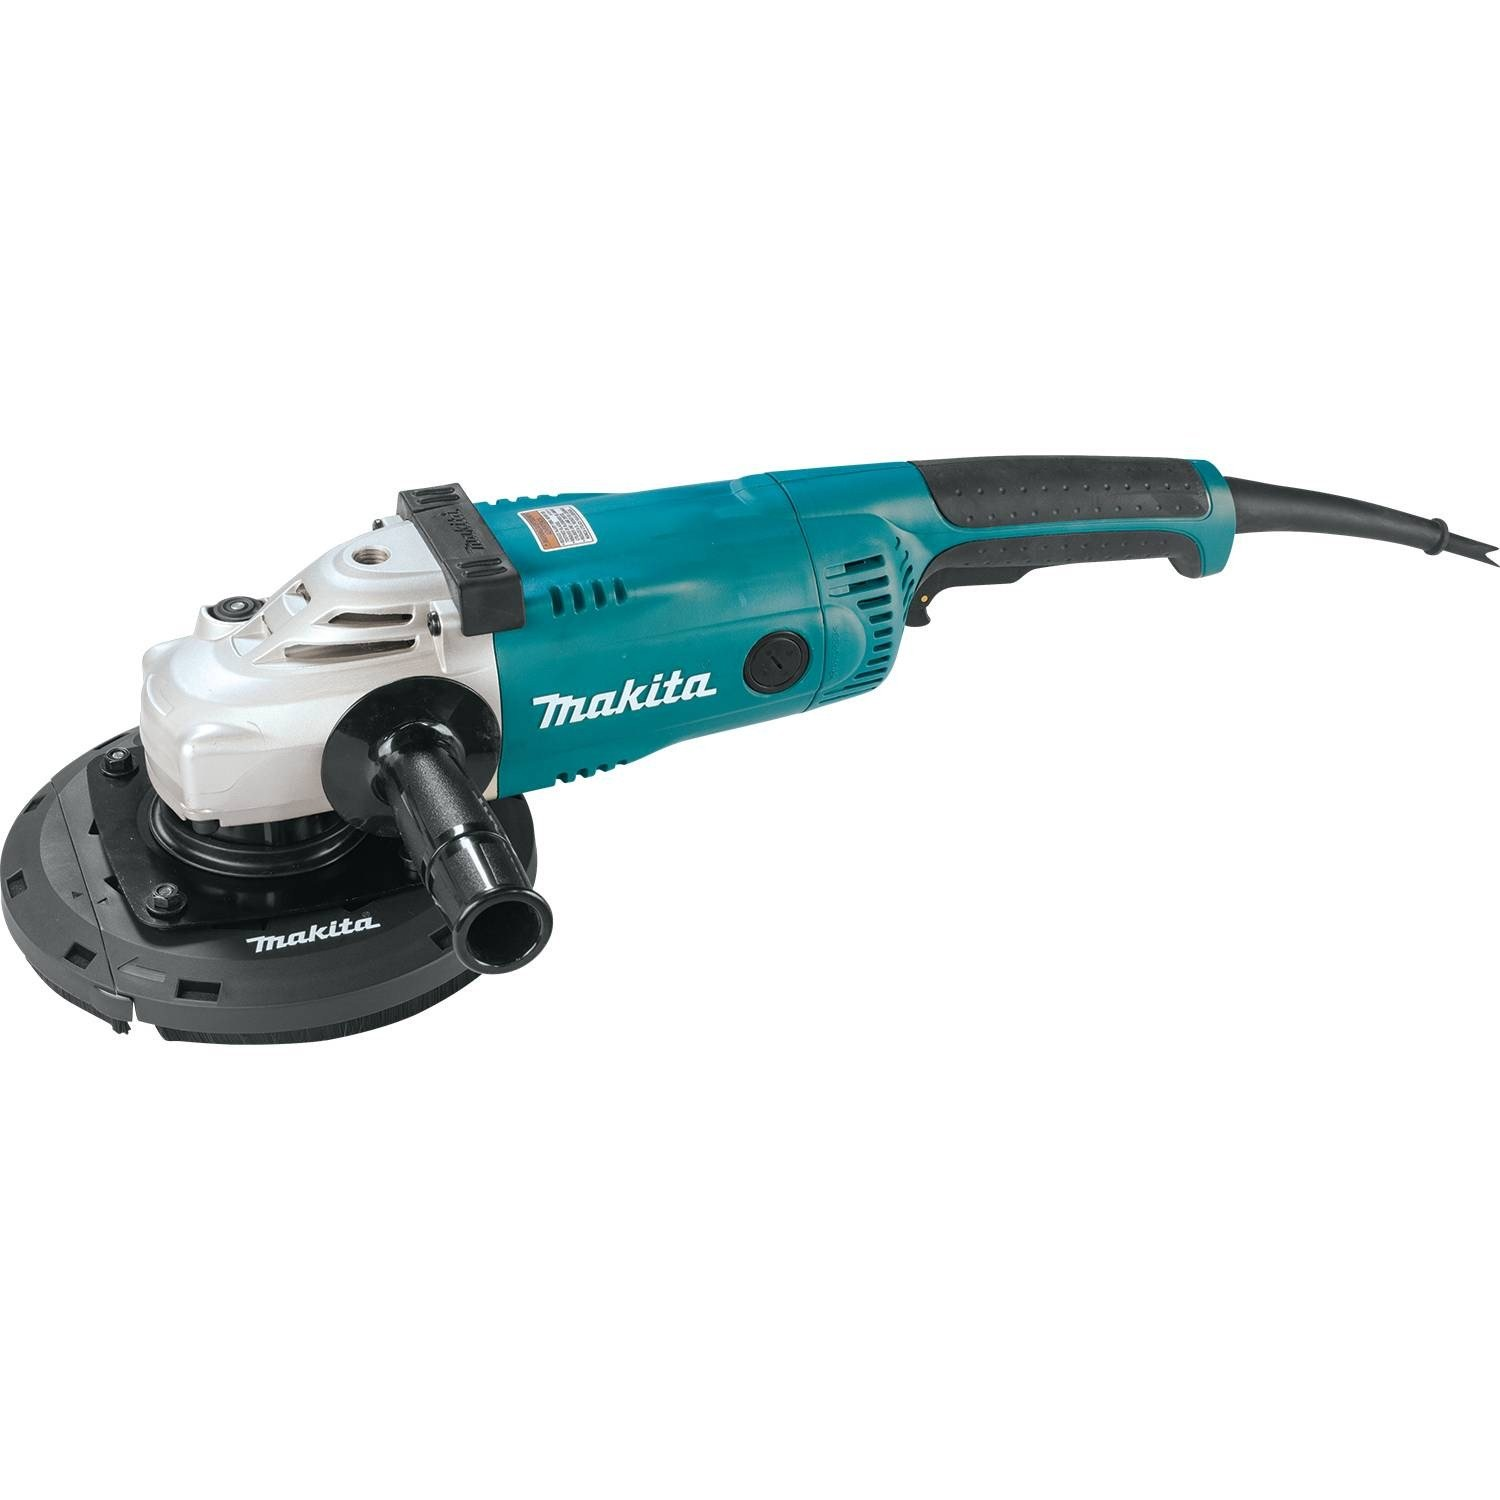 Makita 9555HN angle grinder: specifications